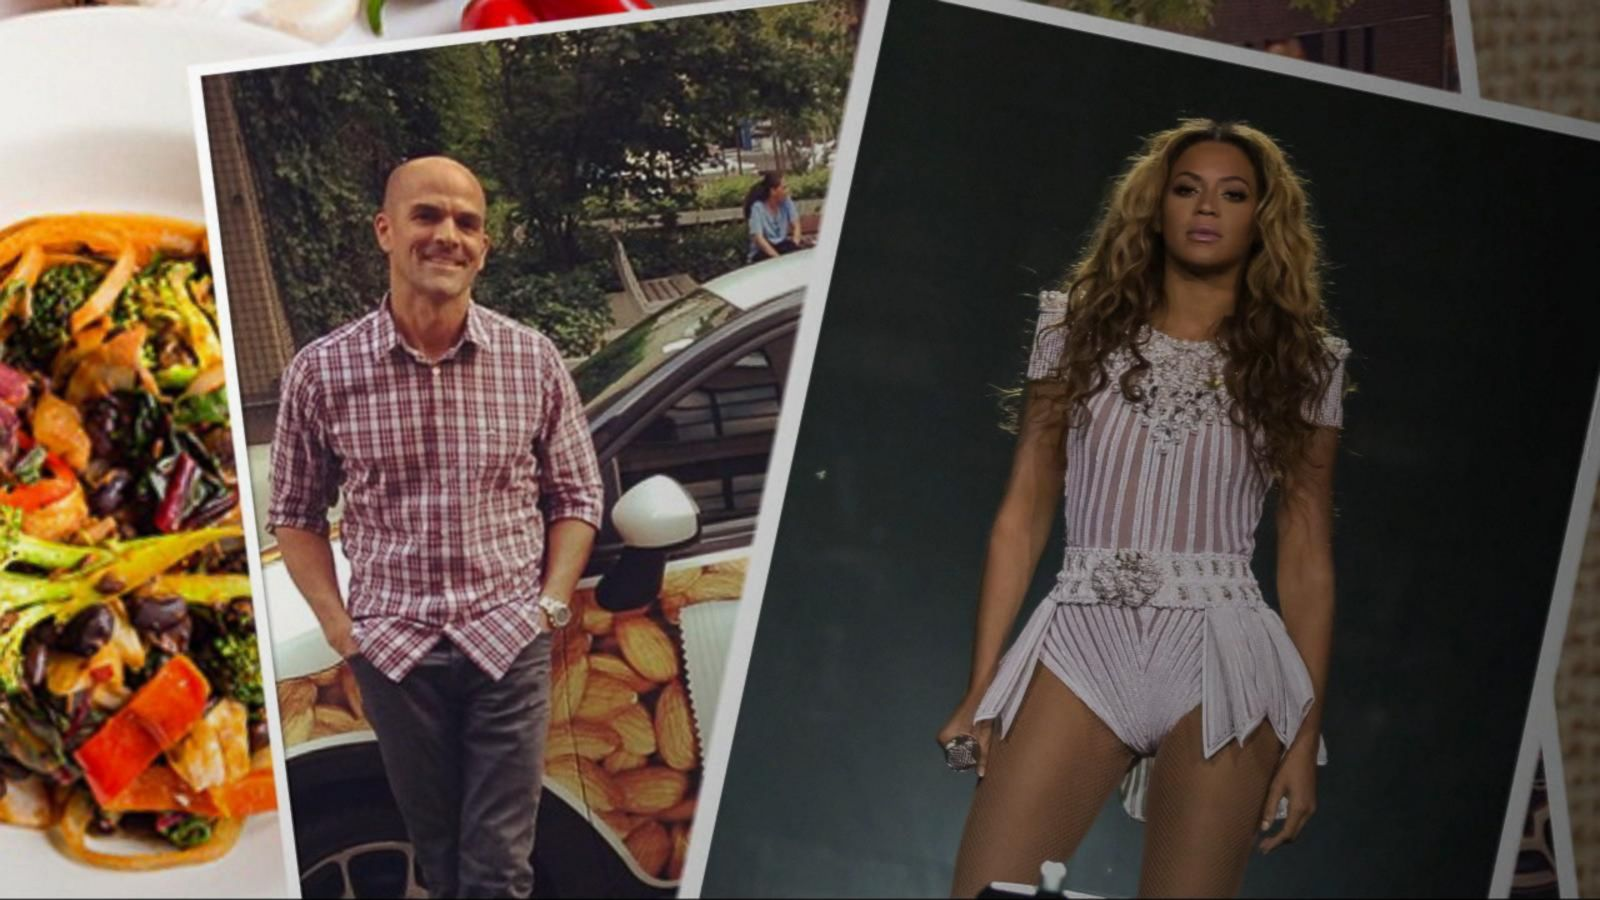 I tried out Beyoncés diet for one week and it was really doable